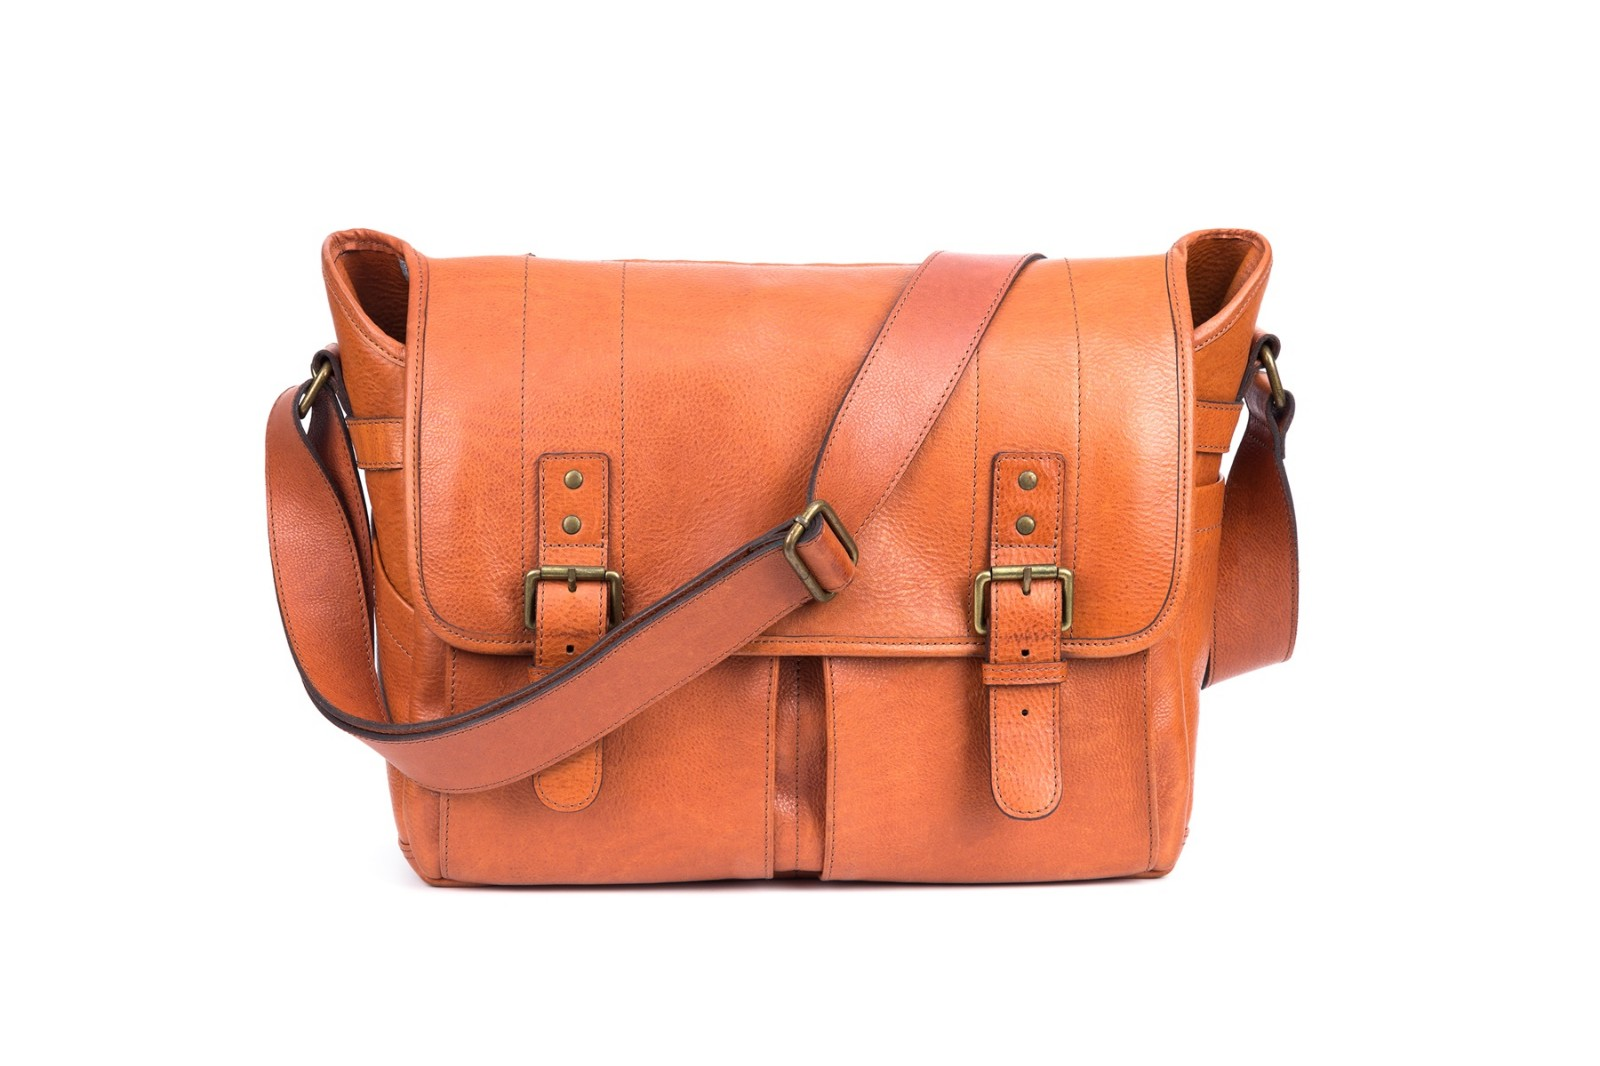 GF bags genuine leather best messenger bags supplier for girls-1